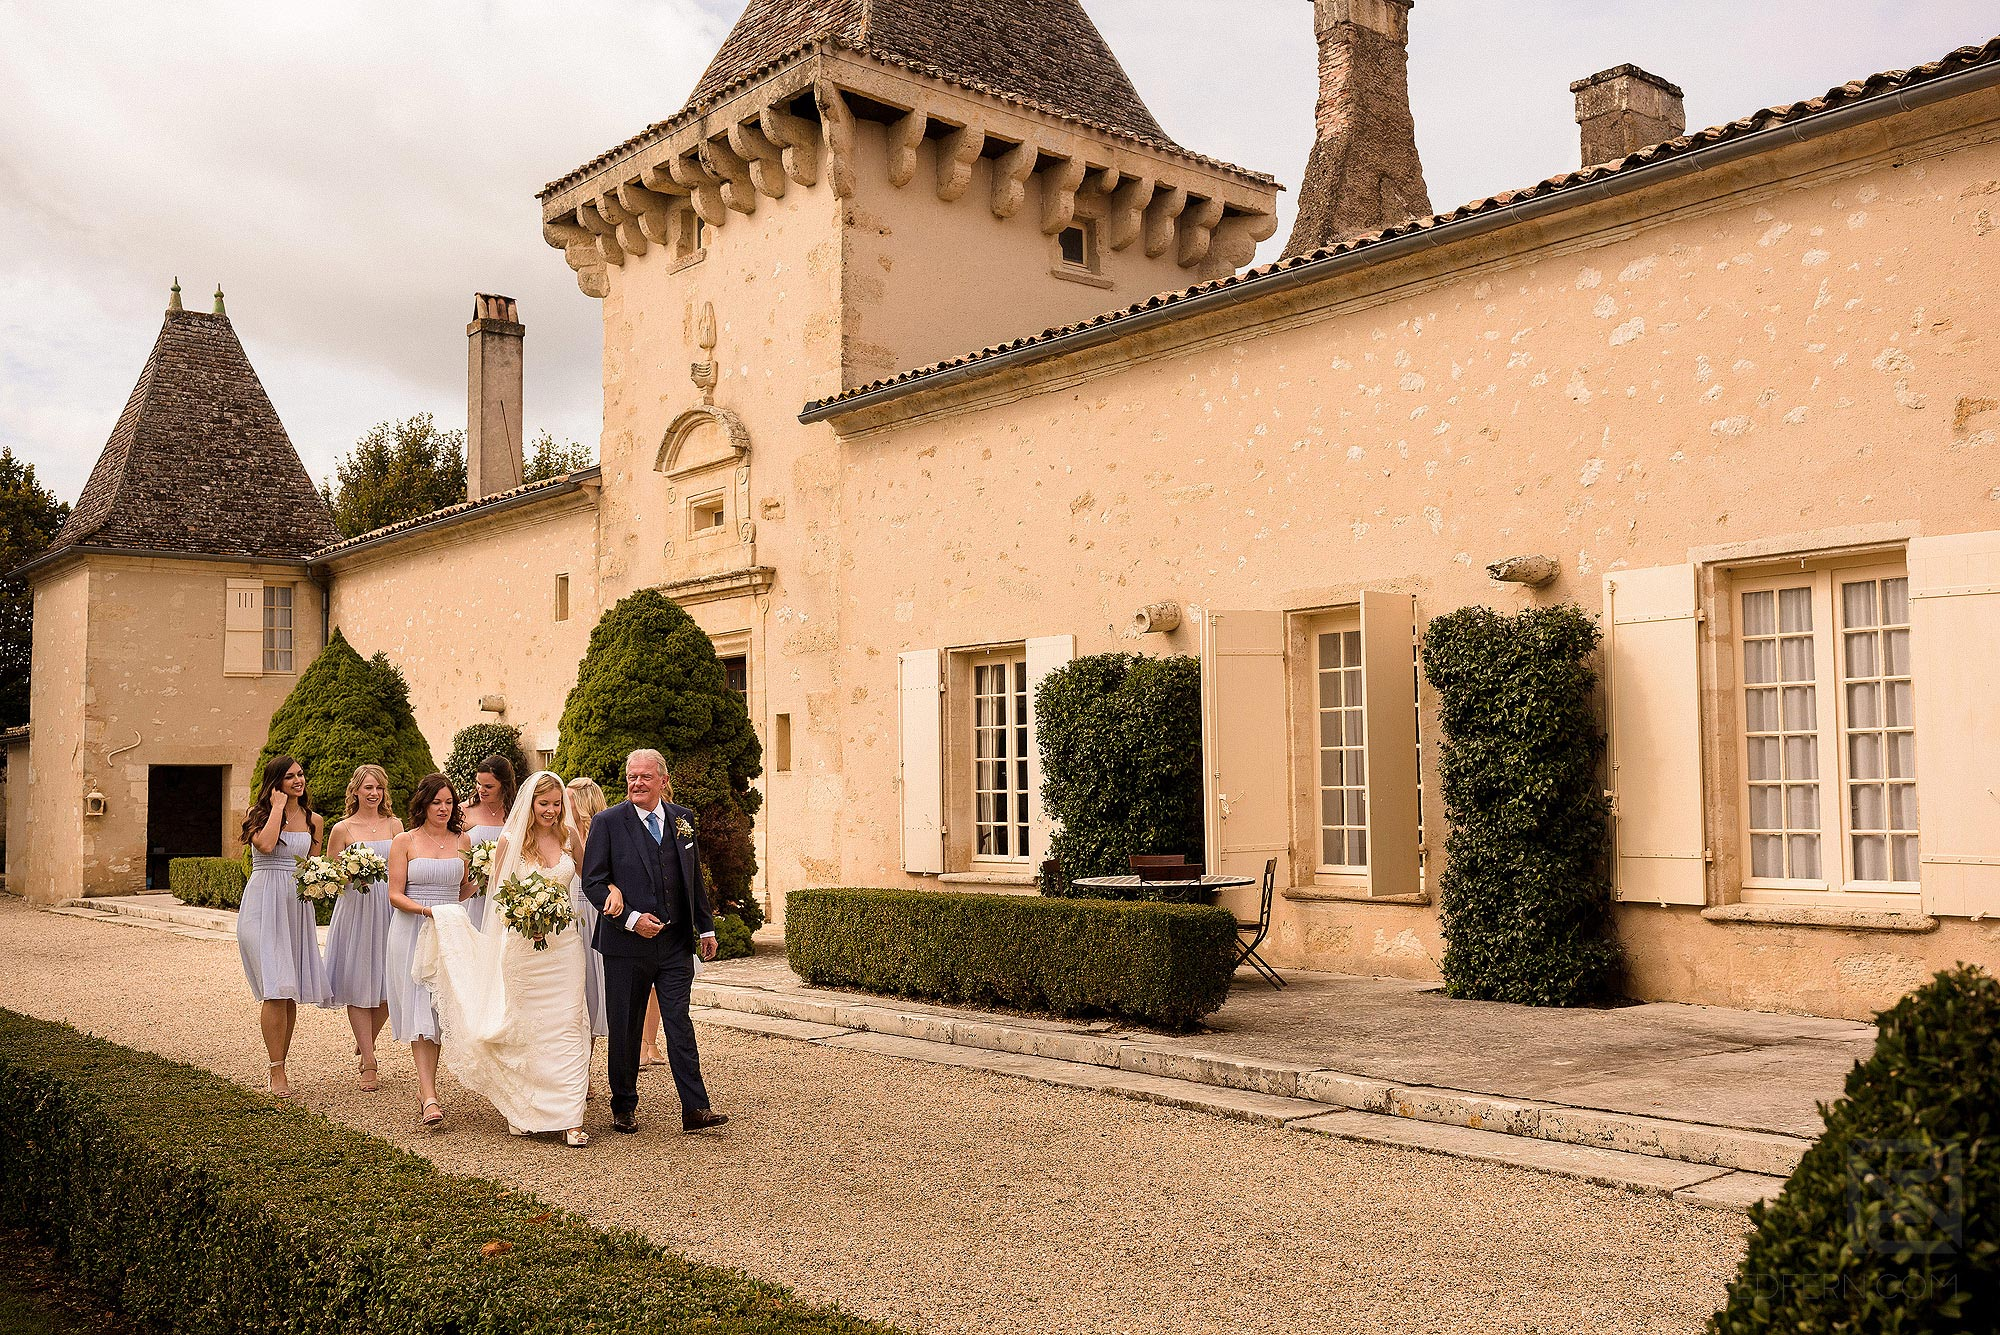 bridal party walking through Chateau Soulac grounds on way to ceremony